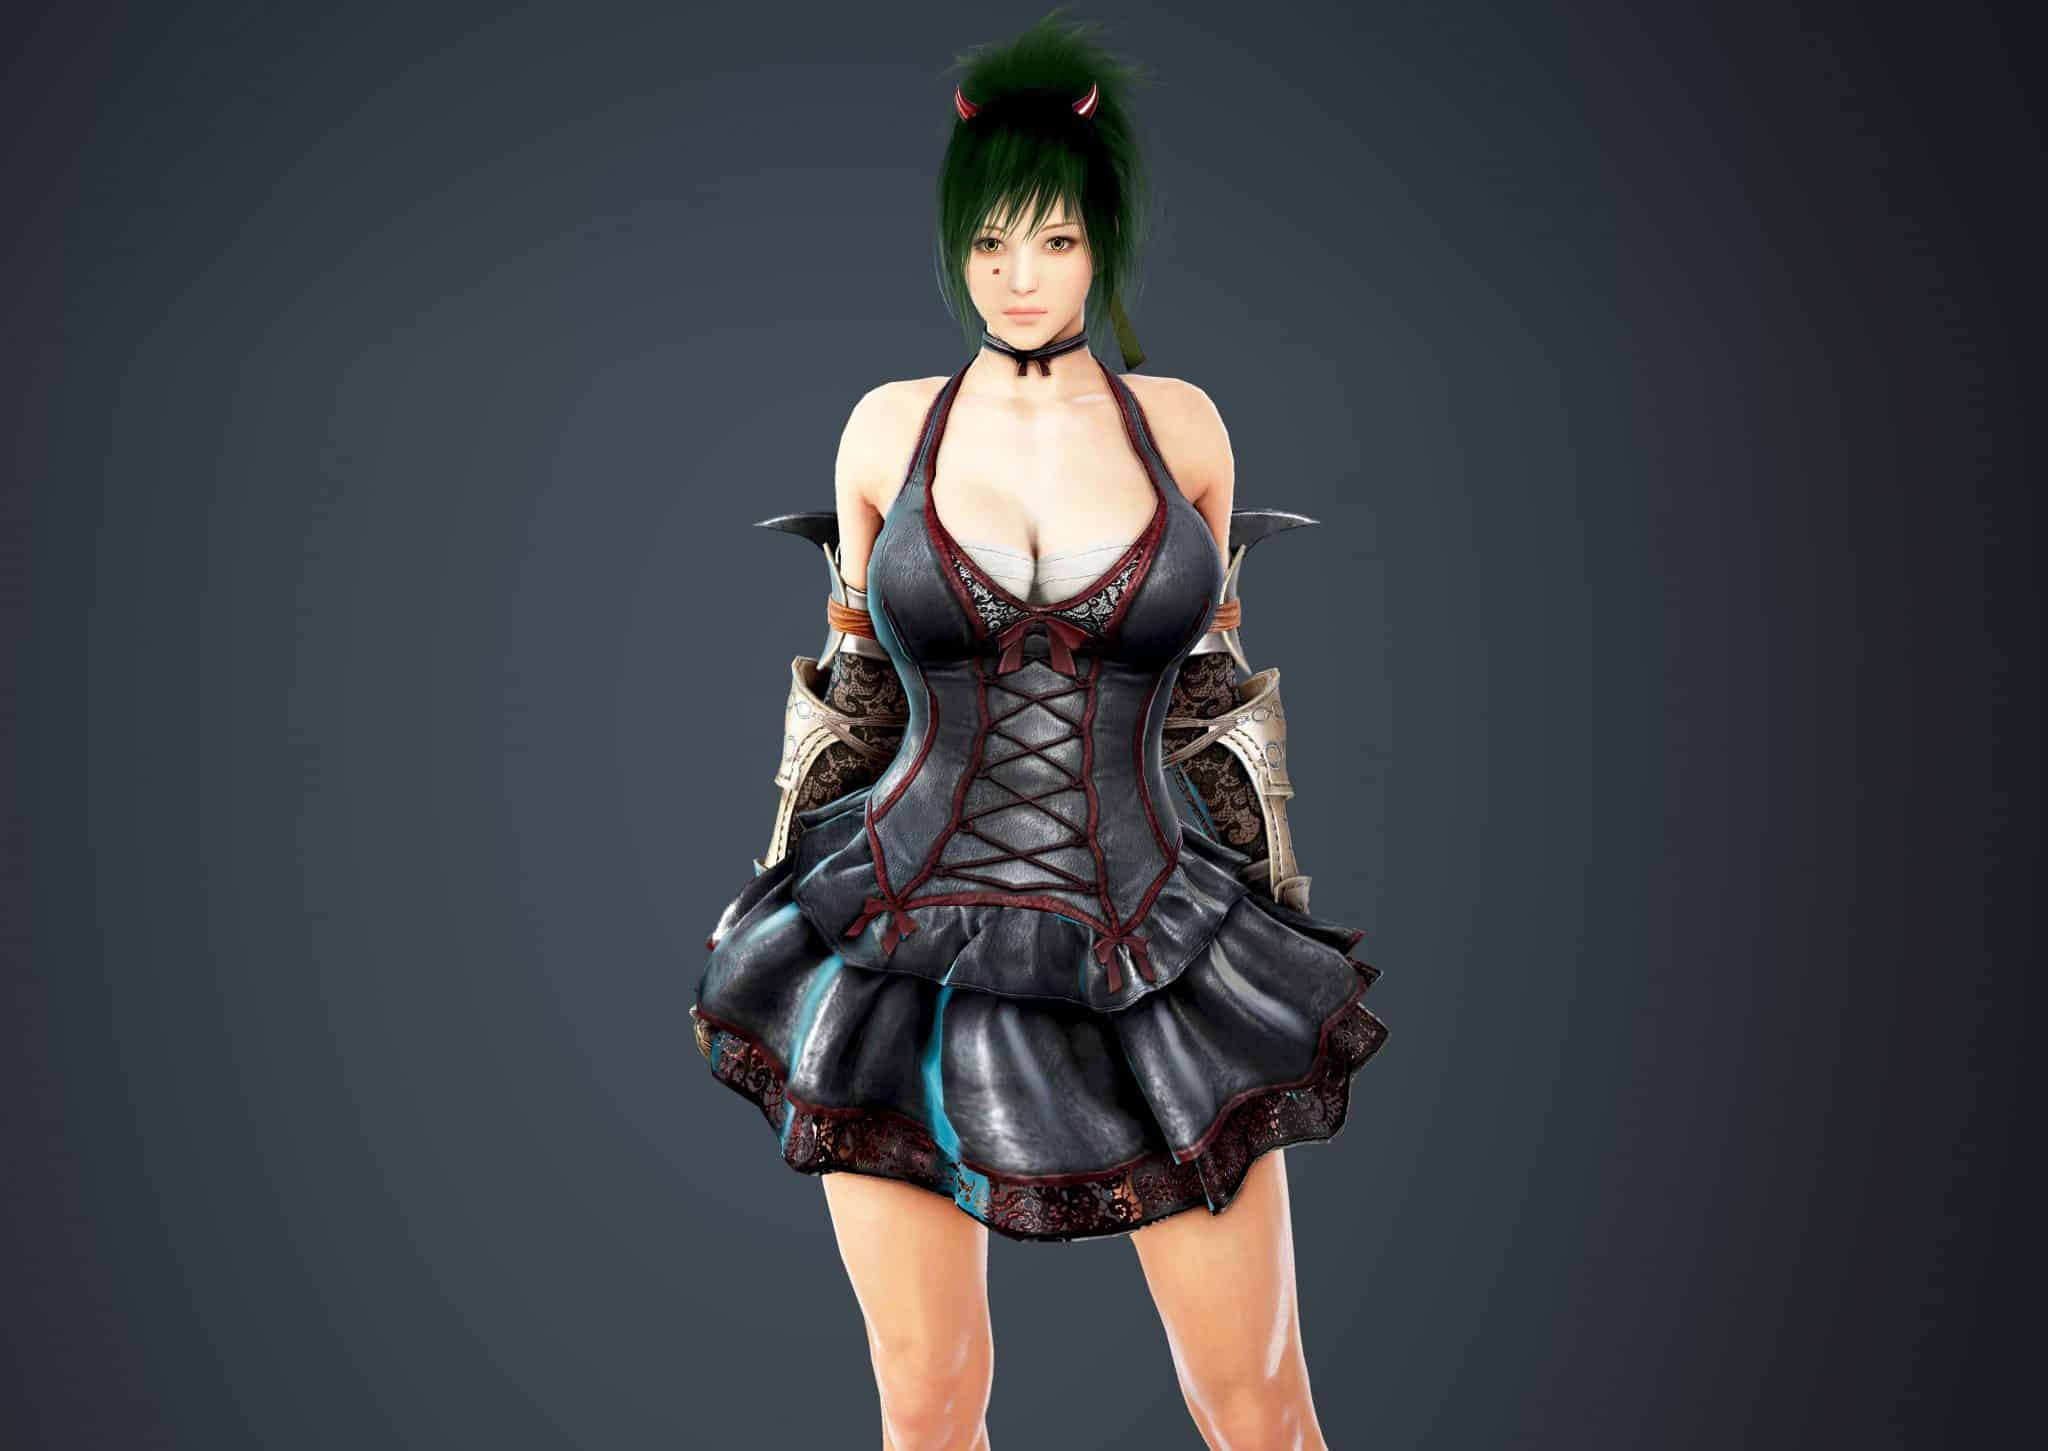 Mystic Bloody Dress, Bloody Outfit Set, Halloween 2018, Black Desert Online